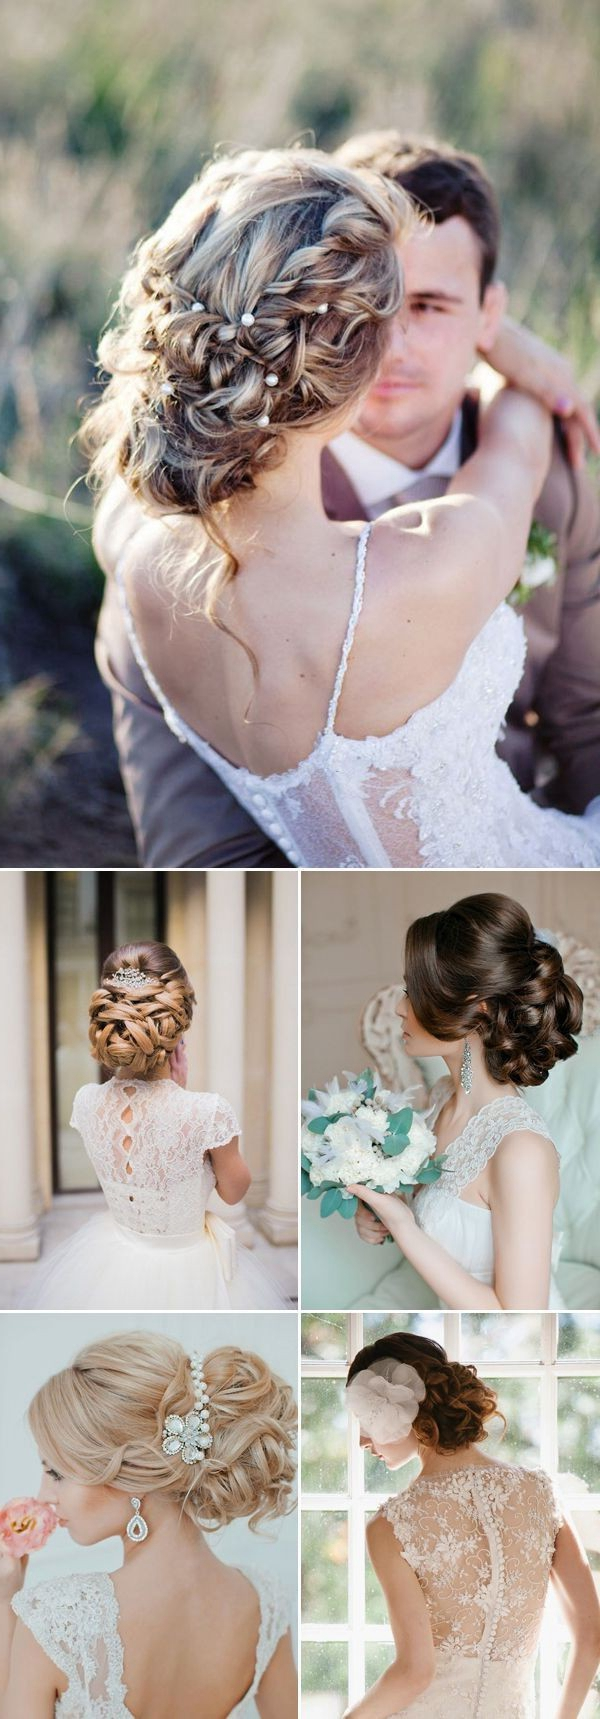 long-updo-wedding-hairstyles-for-every-bride-from-elstile